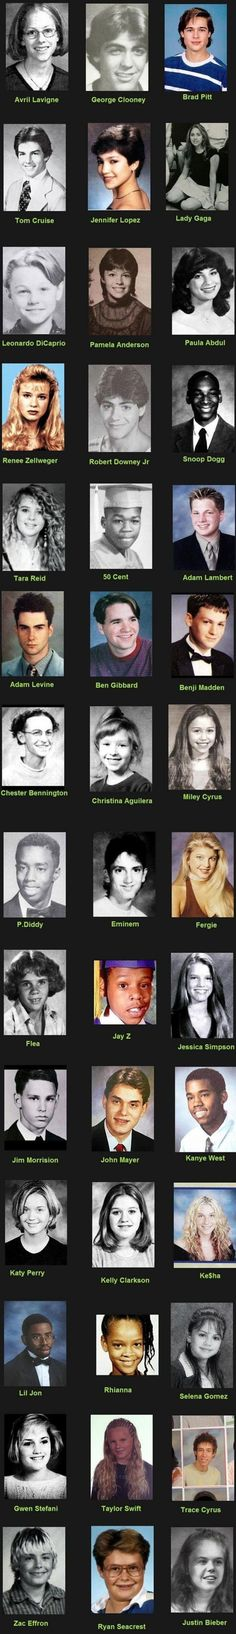 Celebrity Yearbook Photos  U have to look at all of these...the last two are flippin' hilarious!